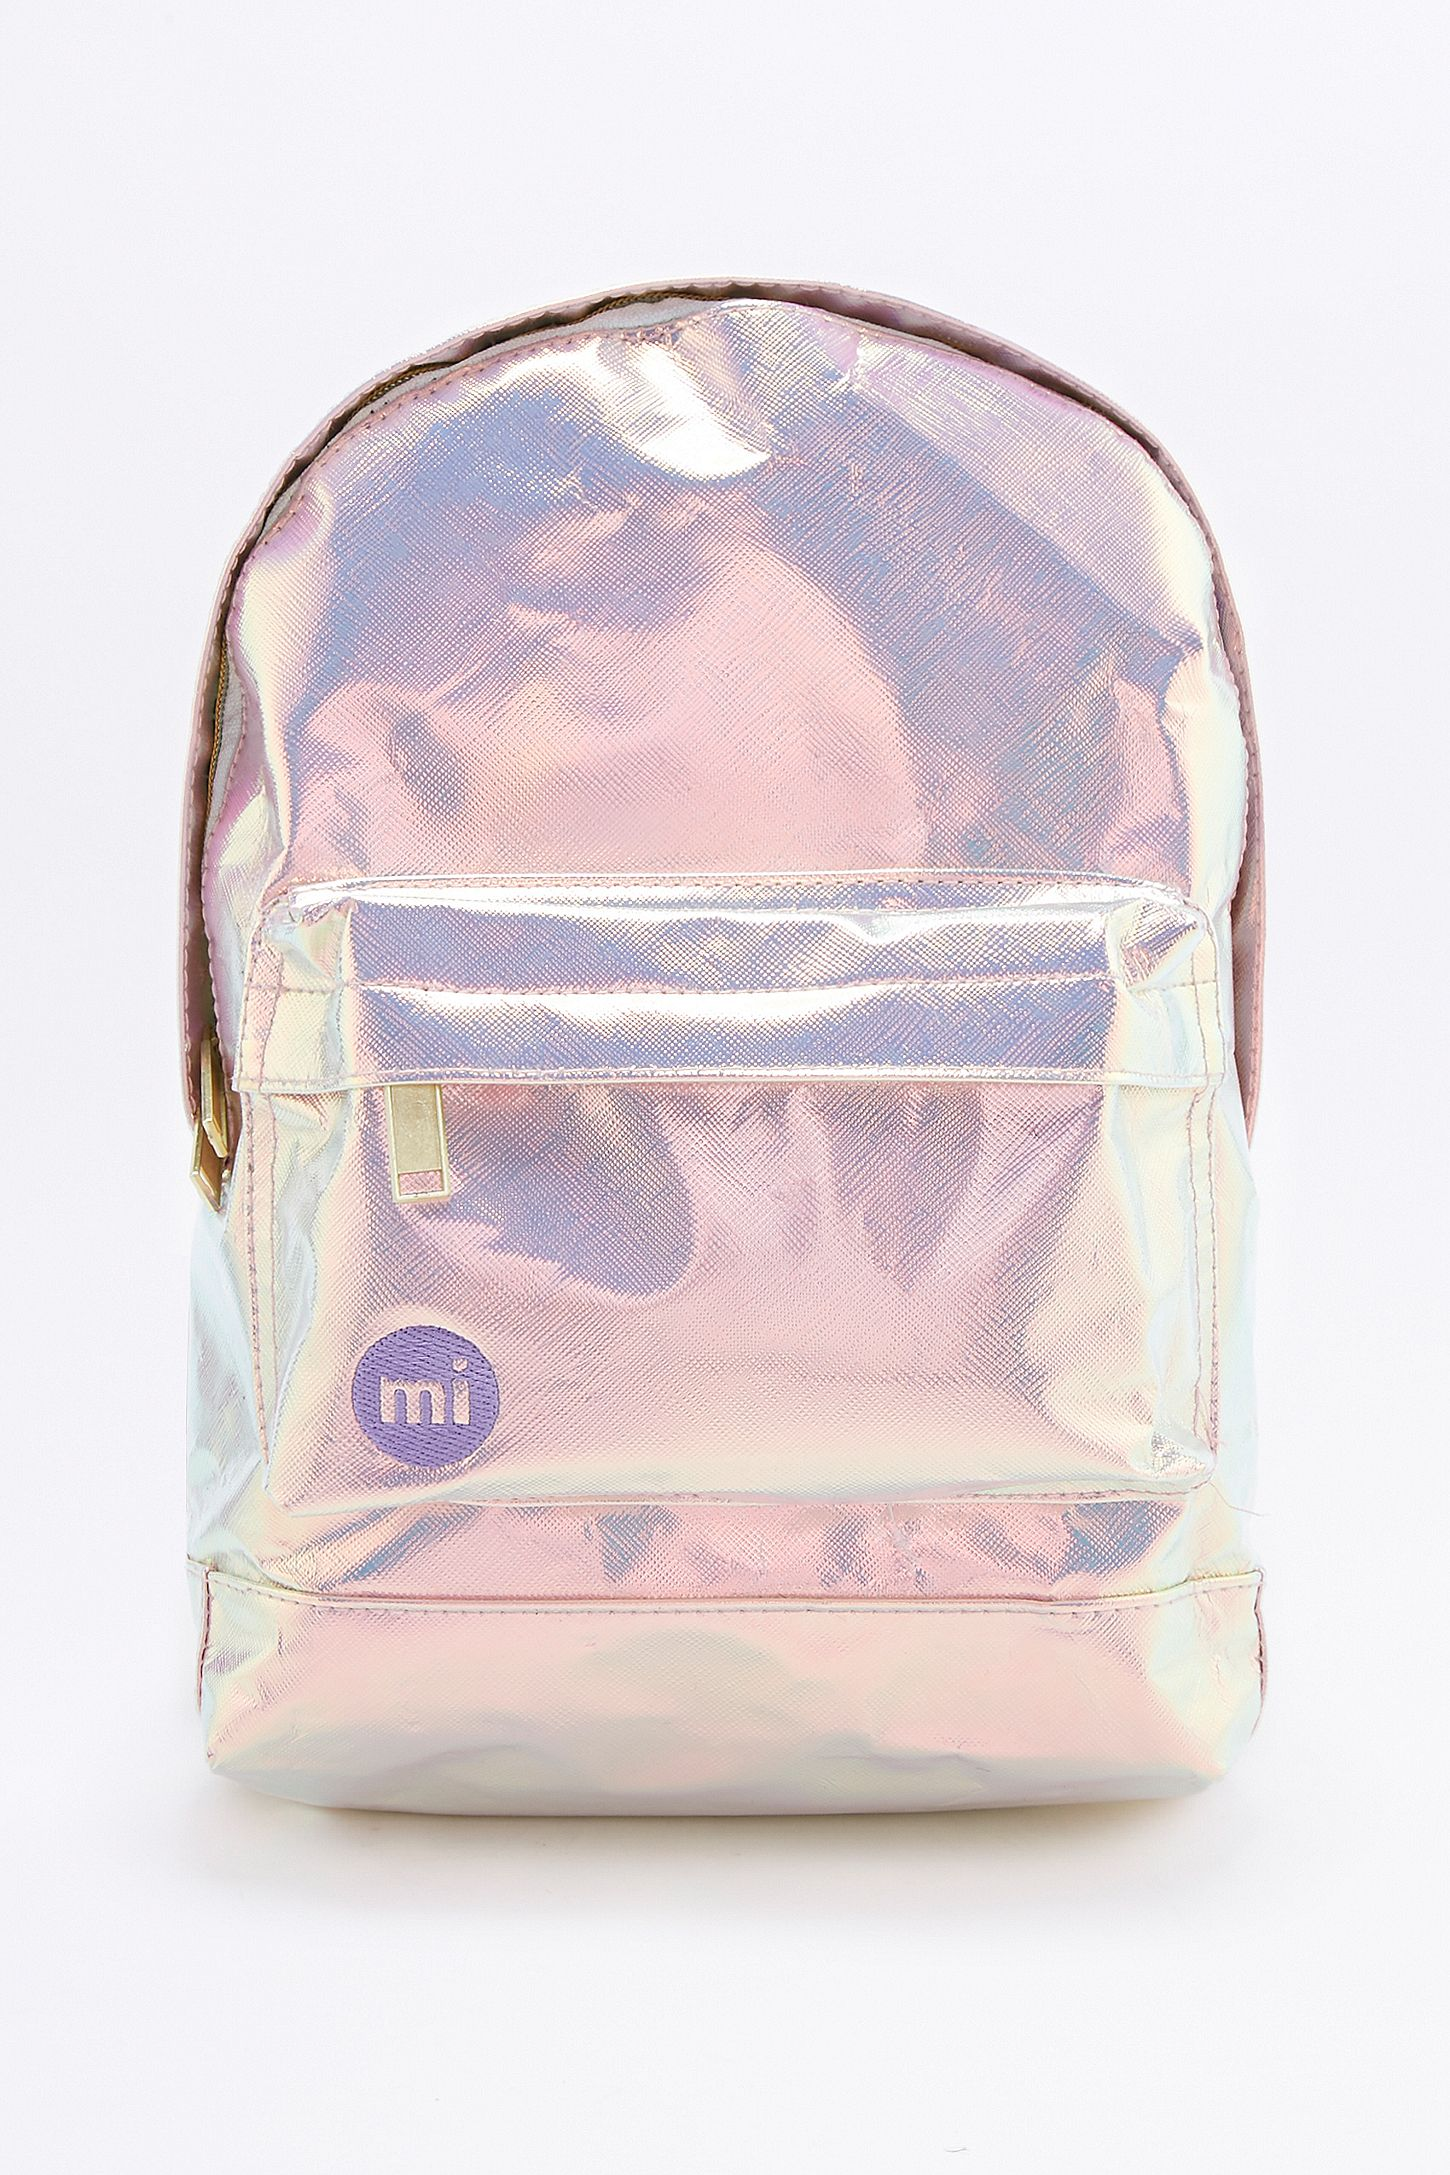 85e19d5d4d Silver Holographic Mini Backpack- Fenix Toulouse Handball